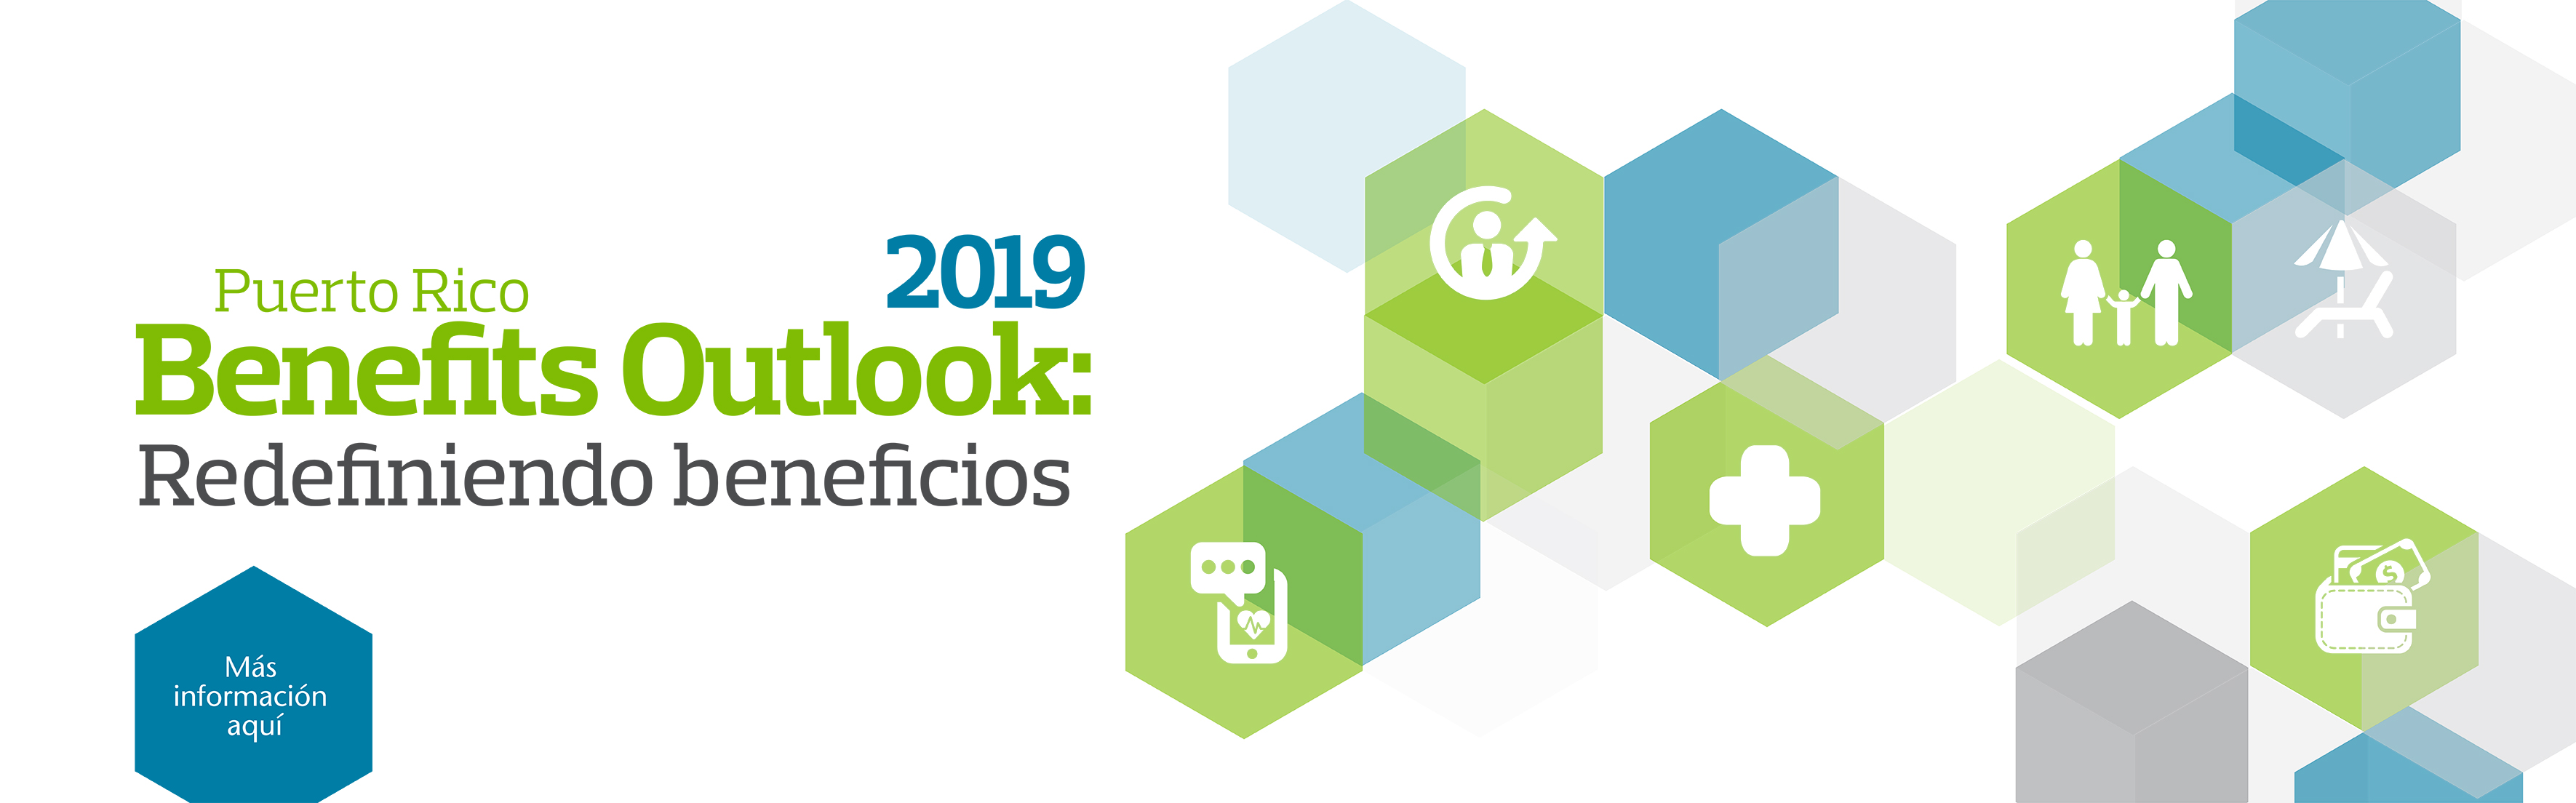 Puerto Rico Benefits Outlook 2019: Redefiniendo beneficios